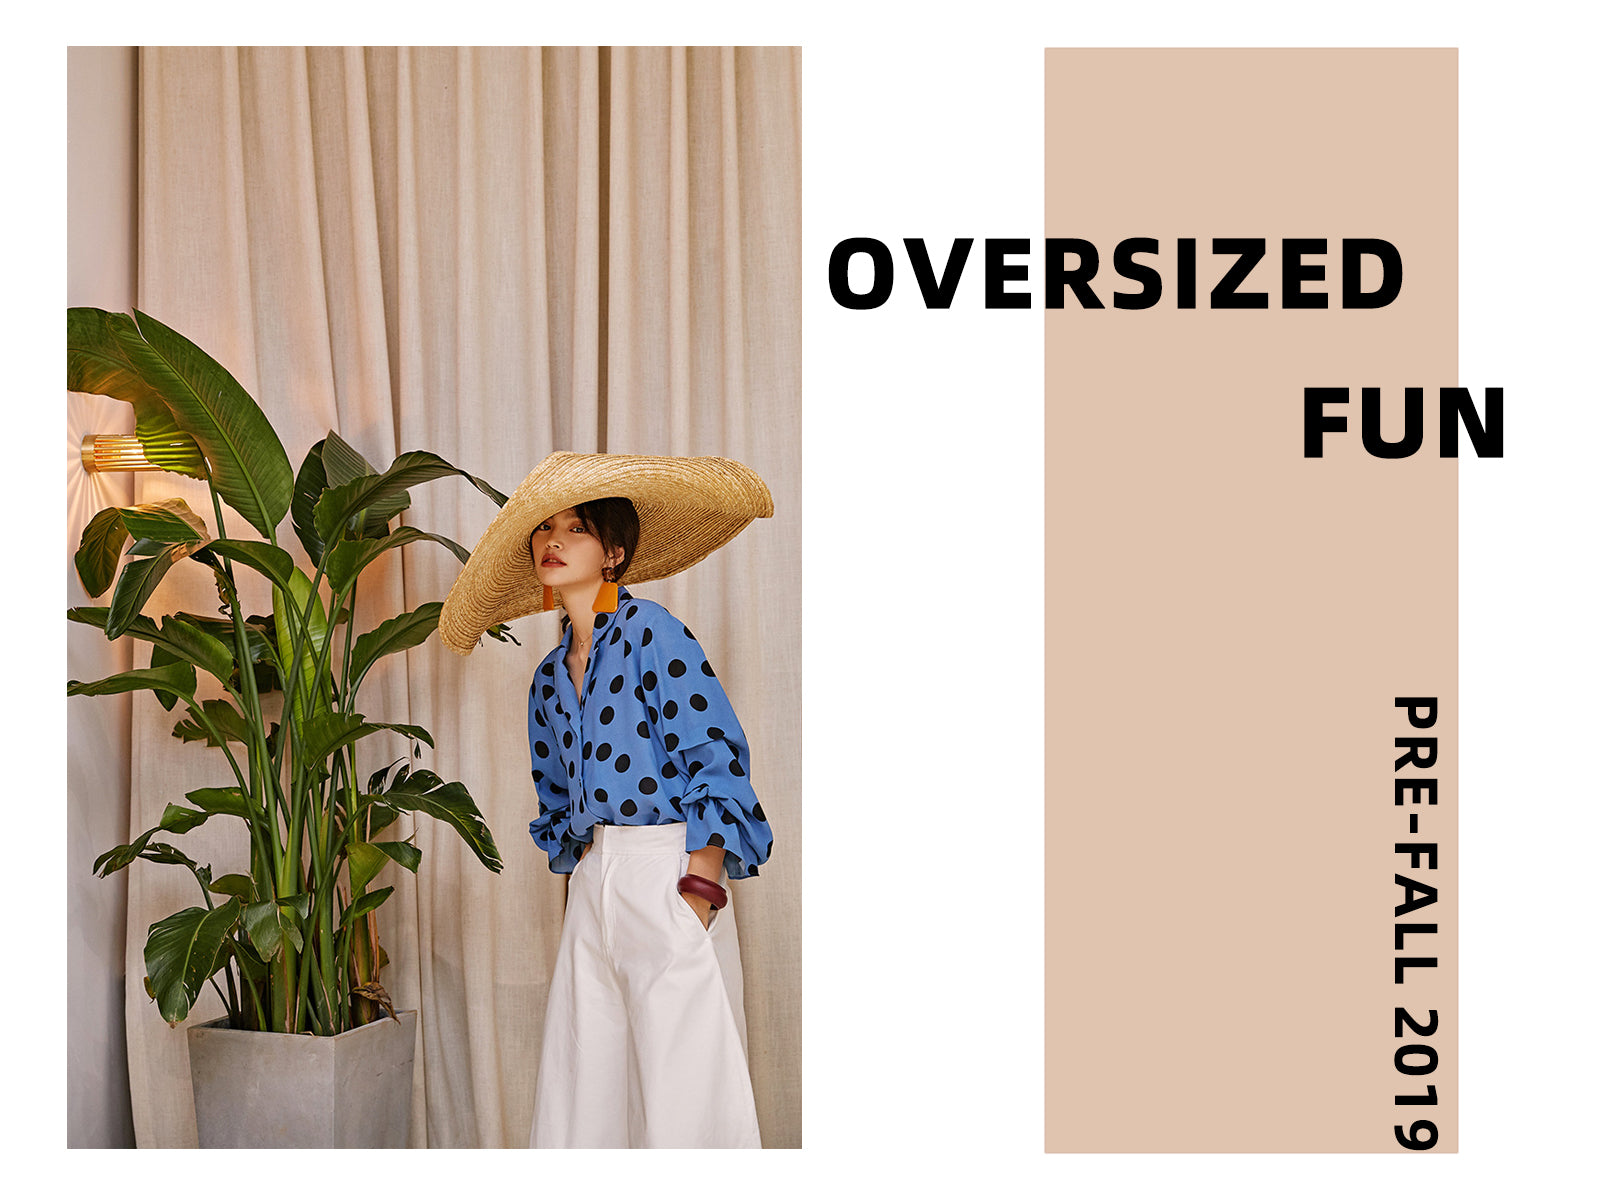 pre-fall 2019 collection - oversized fun